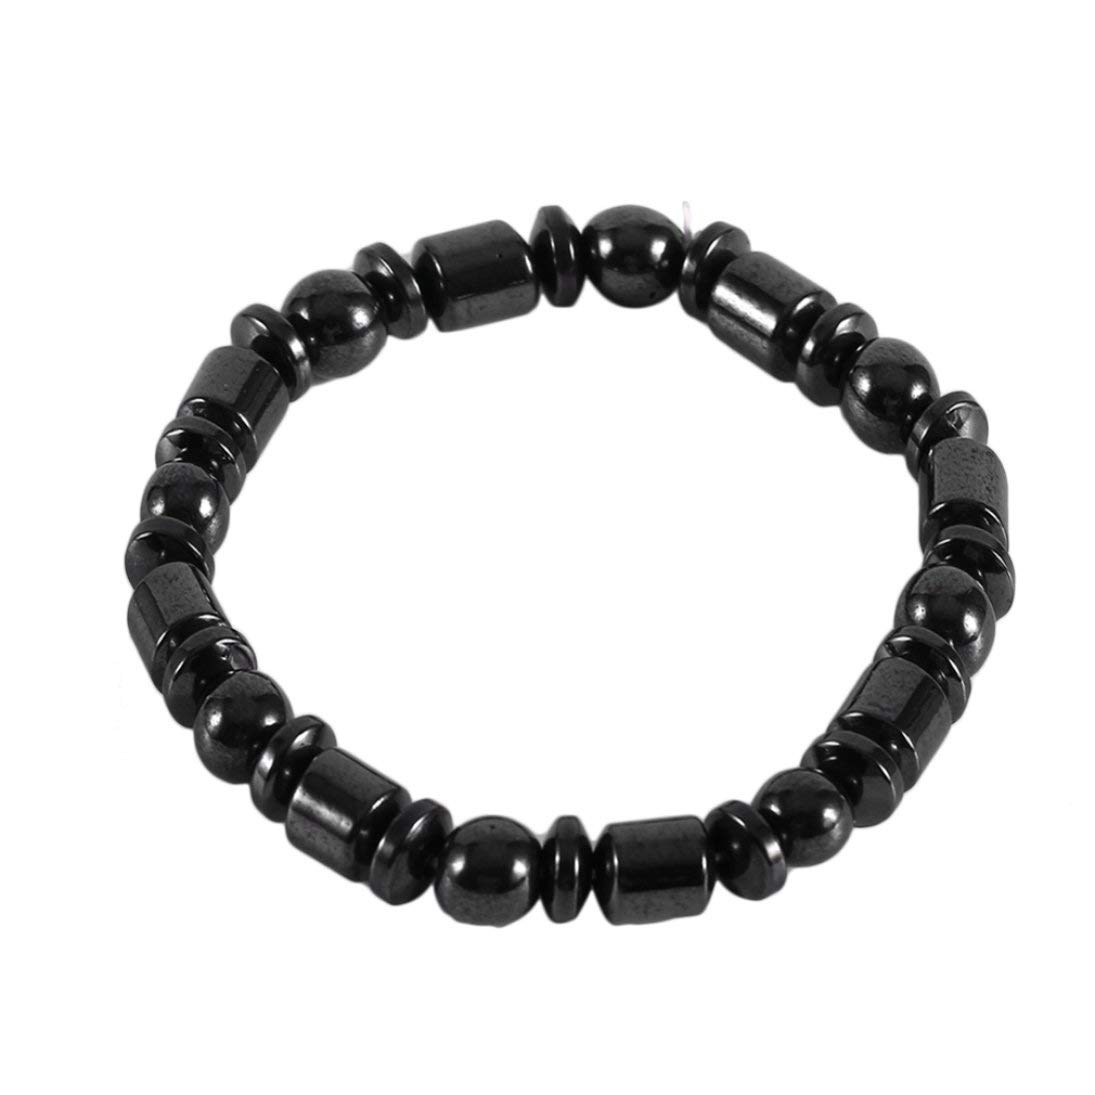 Baynne Body Health Care Biomagnetic Black Stone Magnetic Bracelet Men Women Magnetic Health Weight Loss Hand Bracelet Jewelry